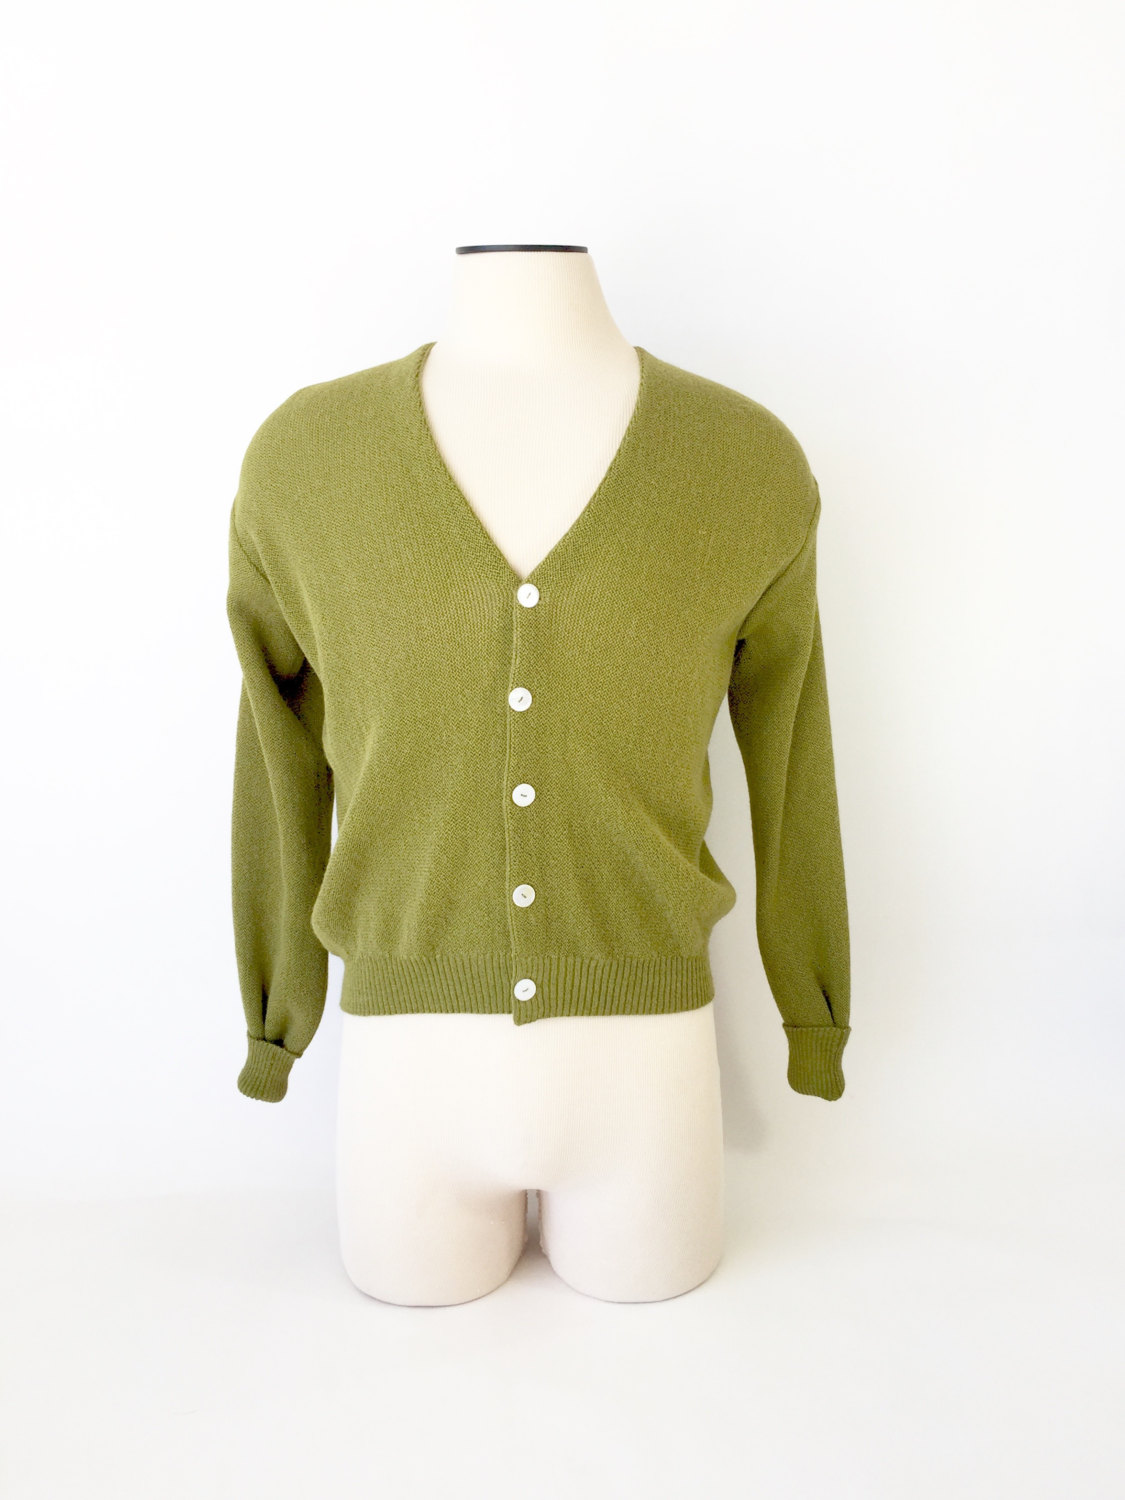 Awesome green boucle cardigan sweater circa 1960s. Great shell buttons and a classic staple in most men's wardrobes of the era..